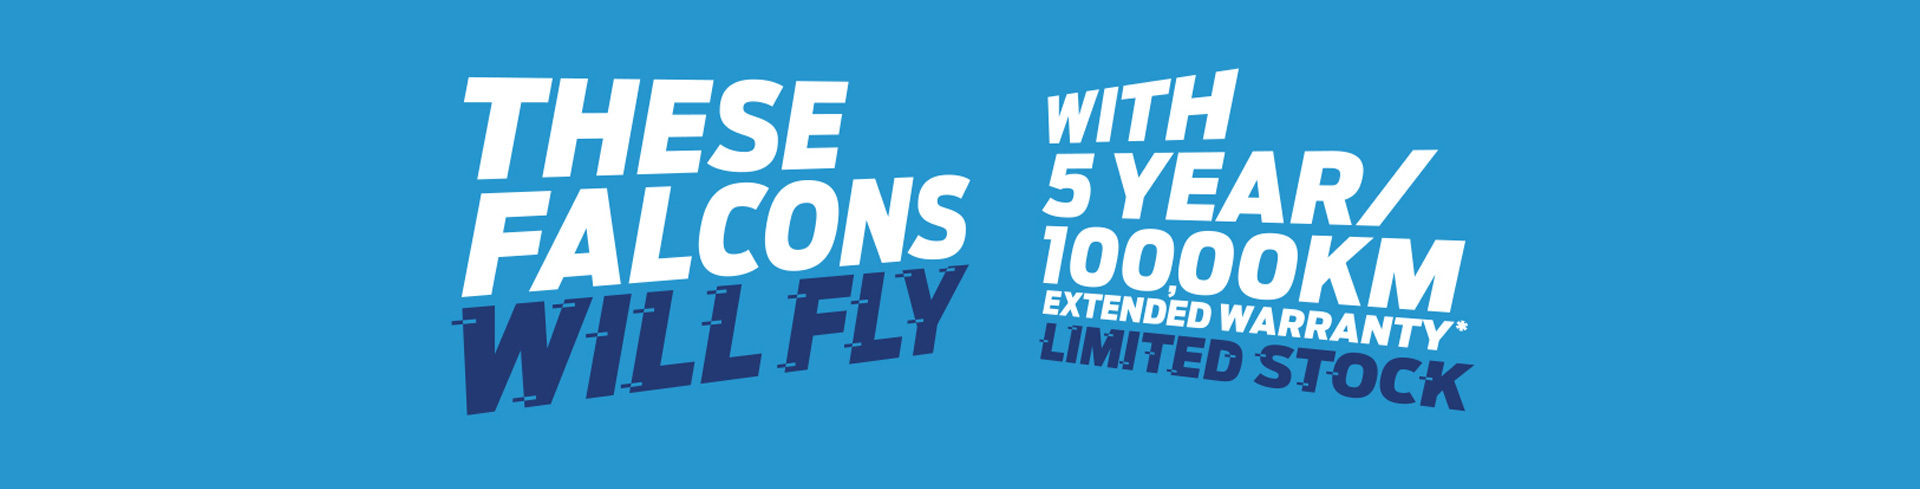 Ford National Offer - 5 Year/100,000km extended warranty